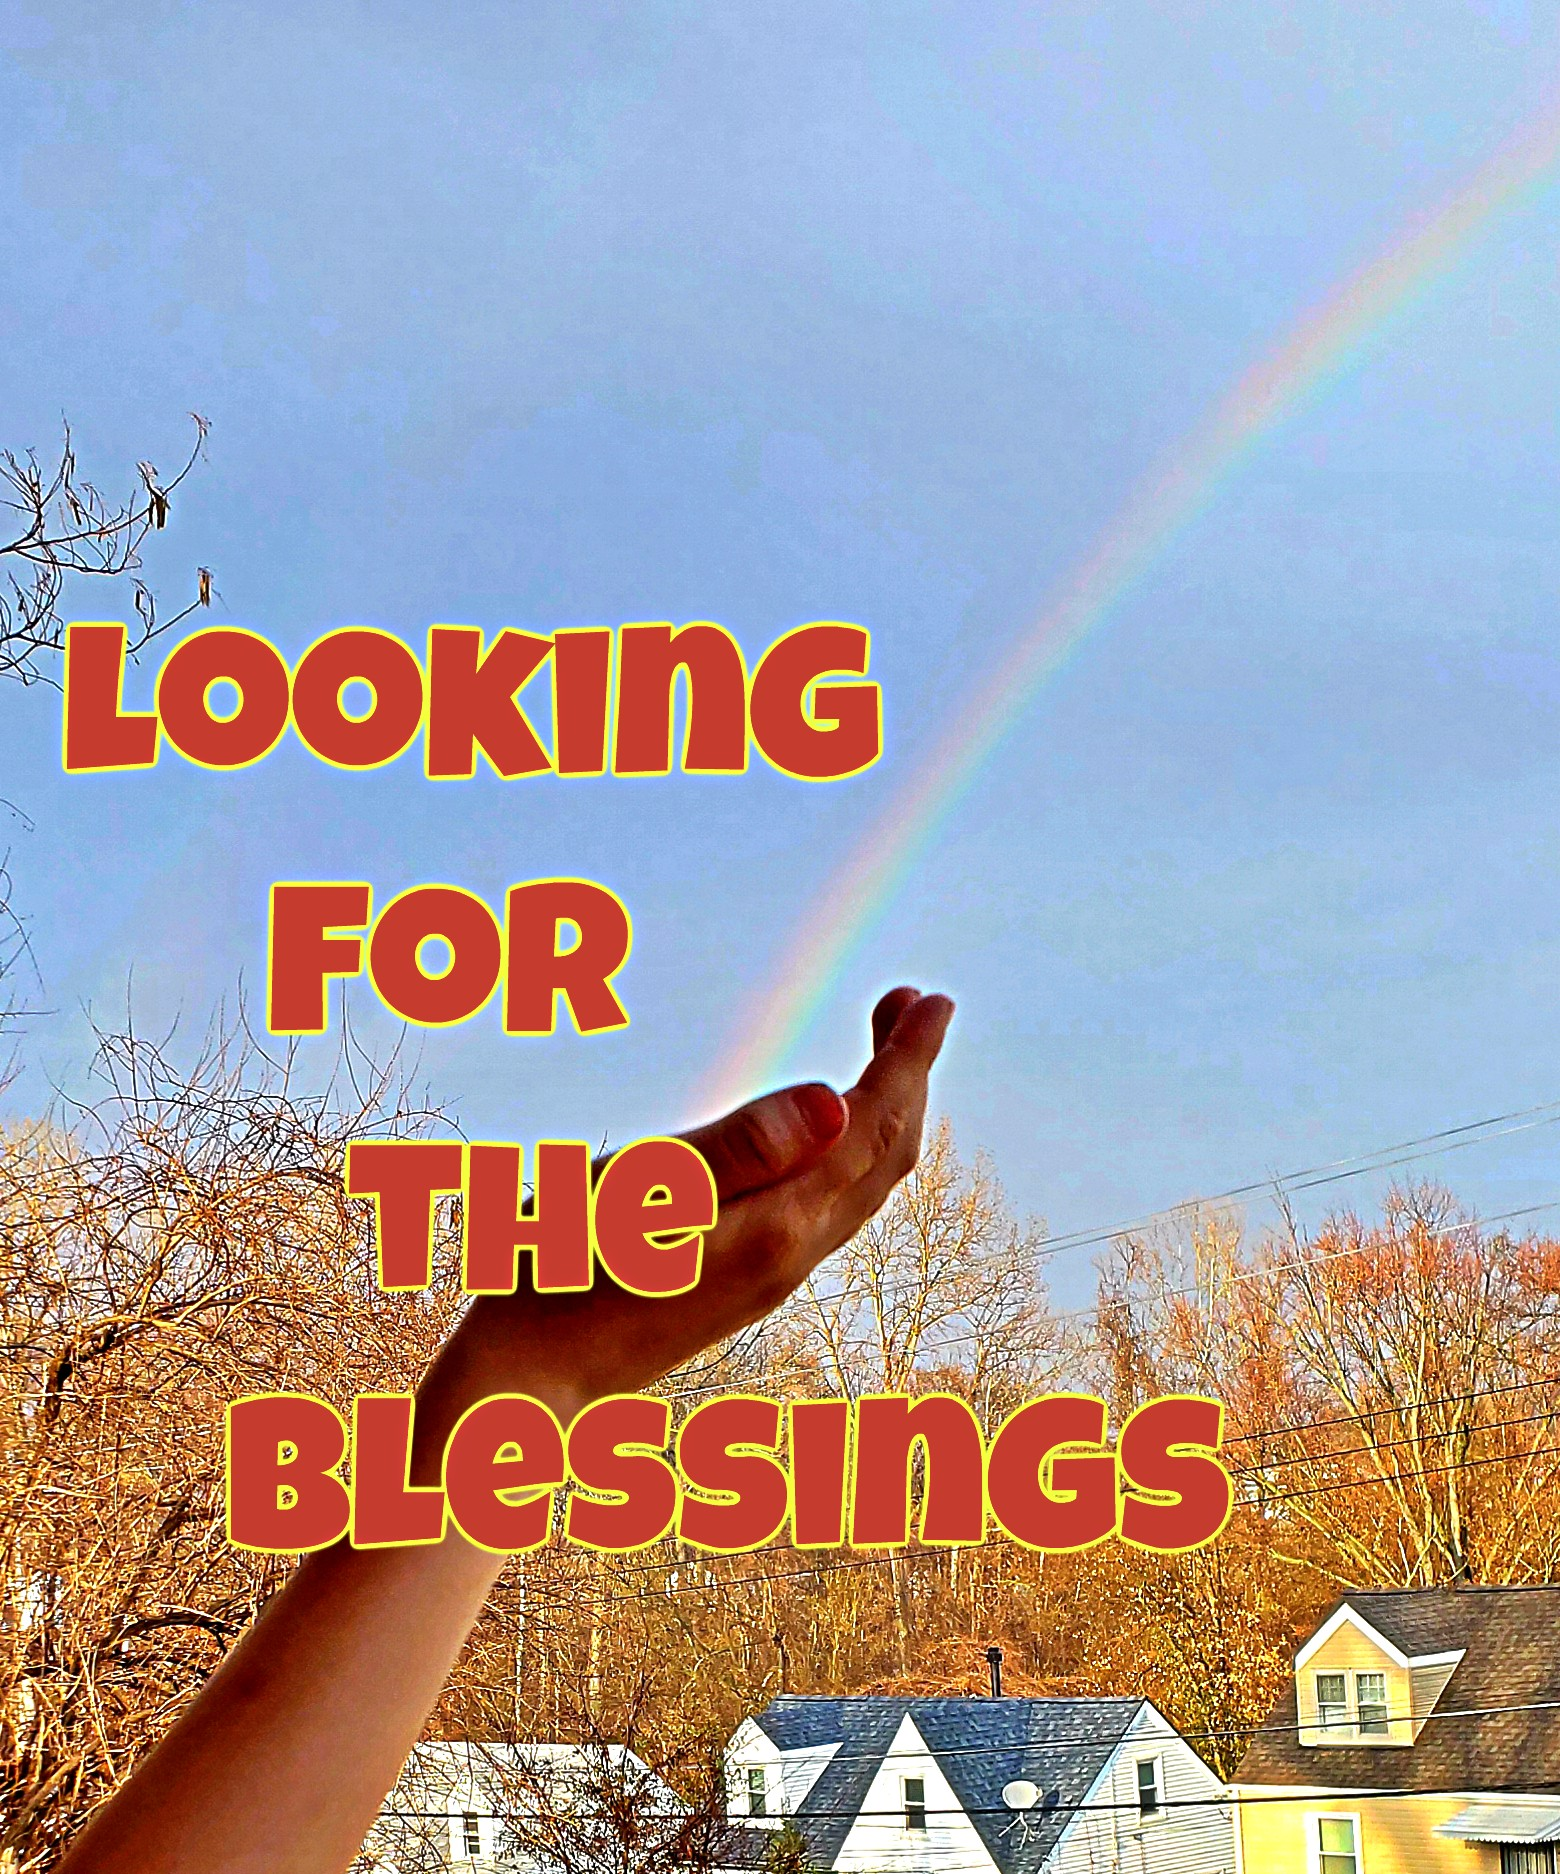 Looking for the Blessings